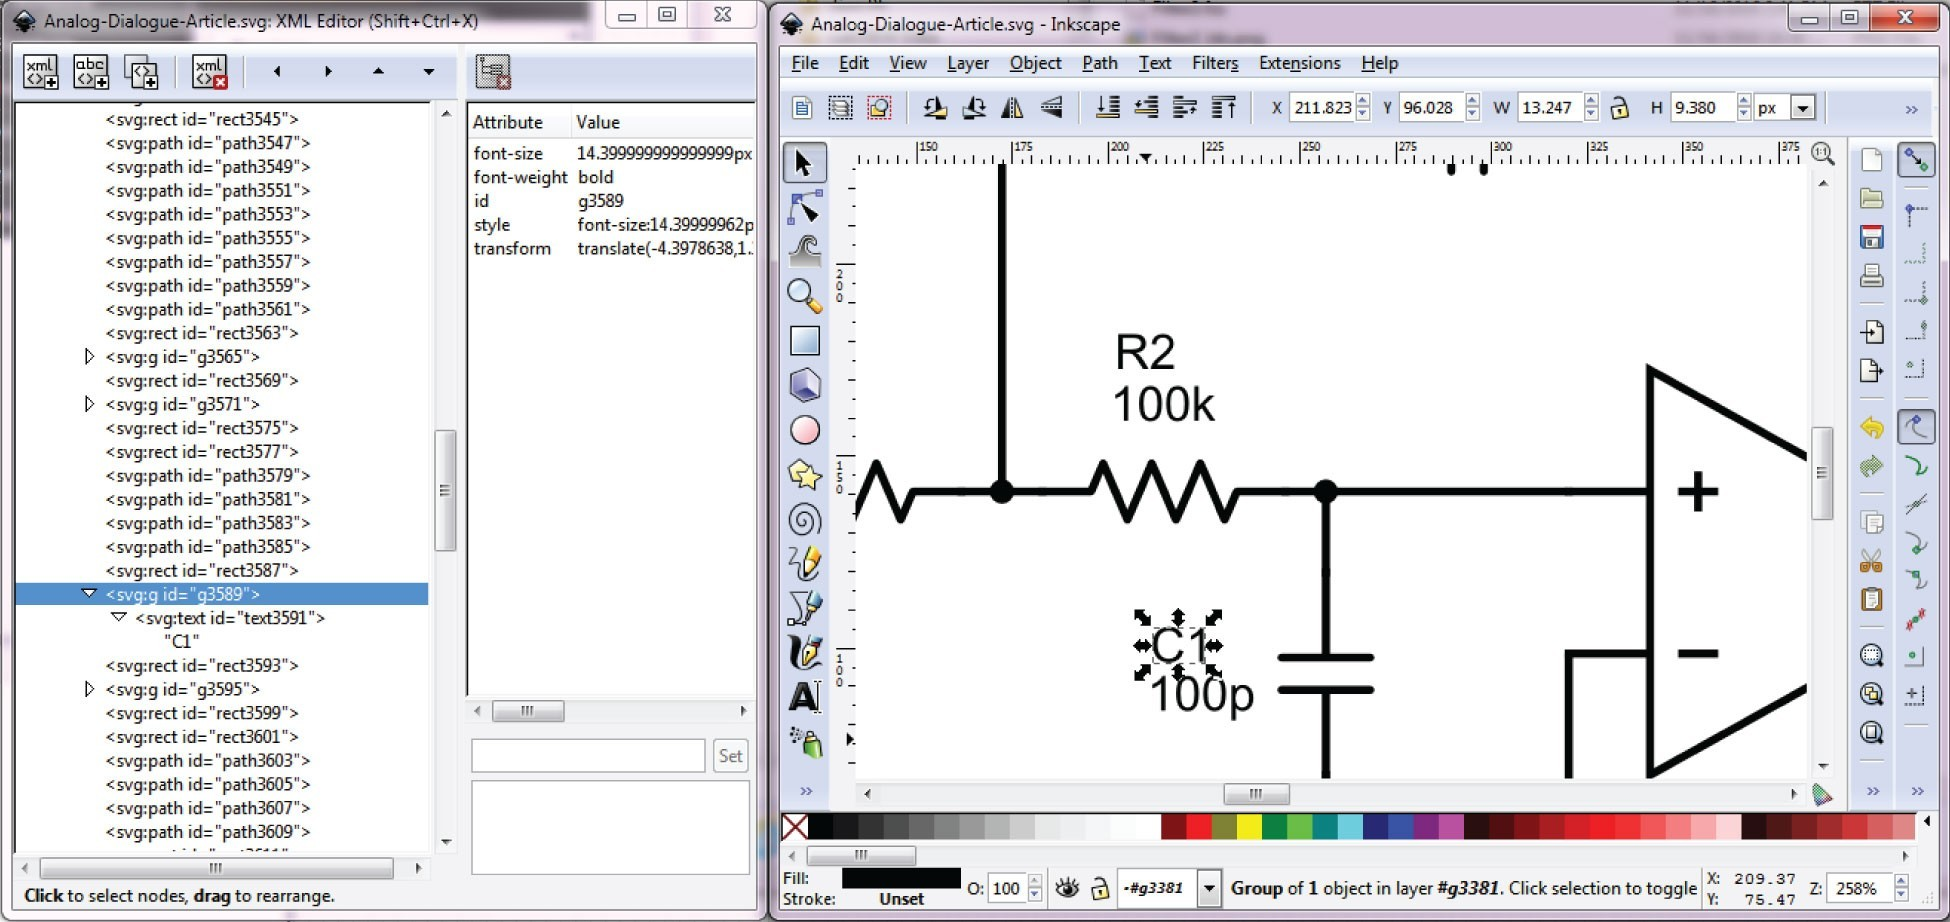 Schematic editing in the Inkscape tool